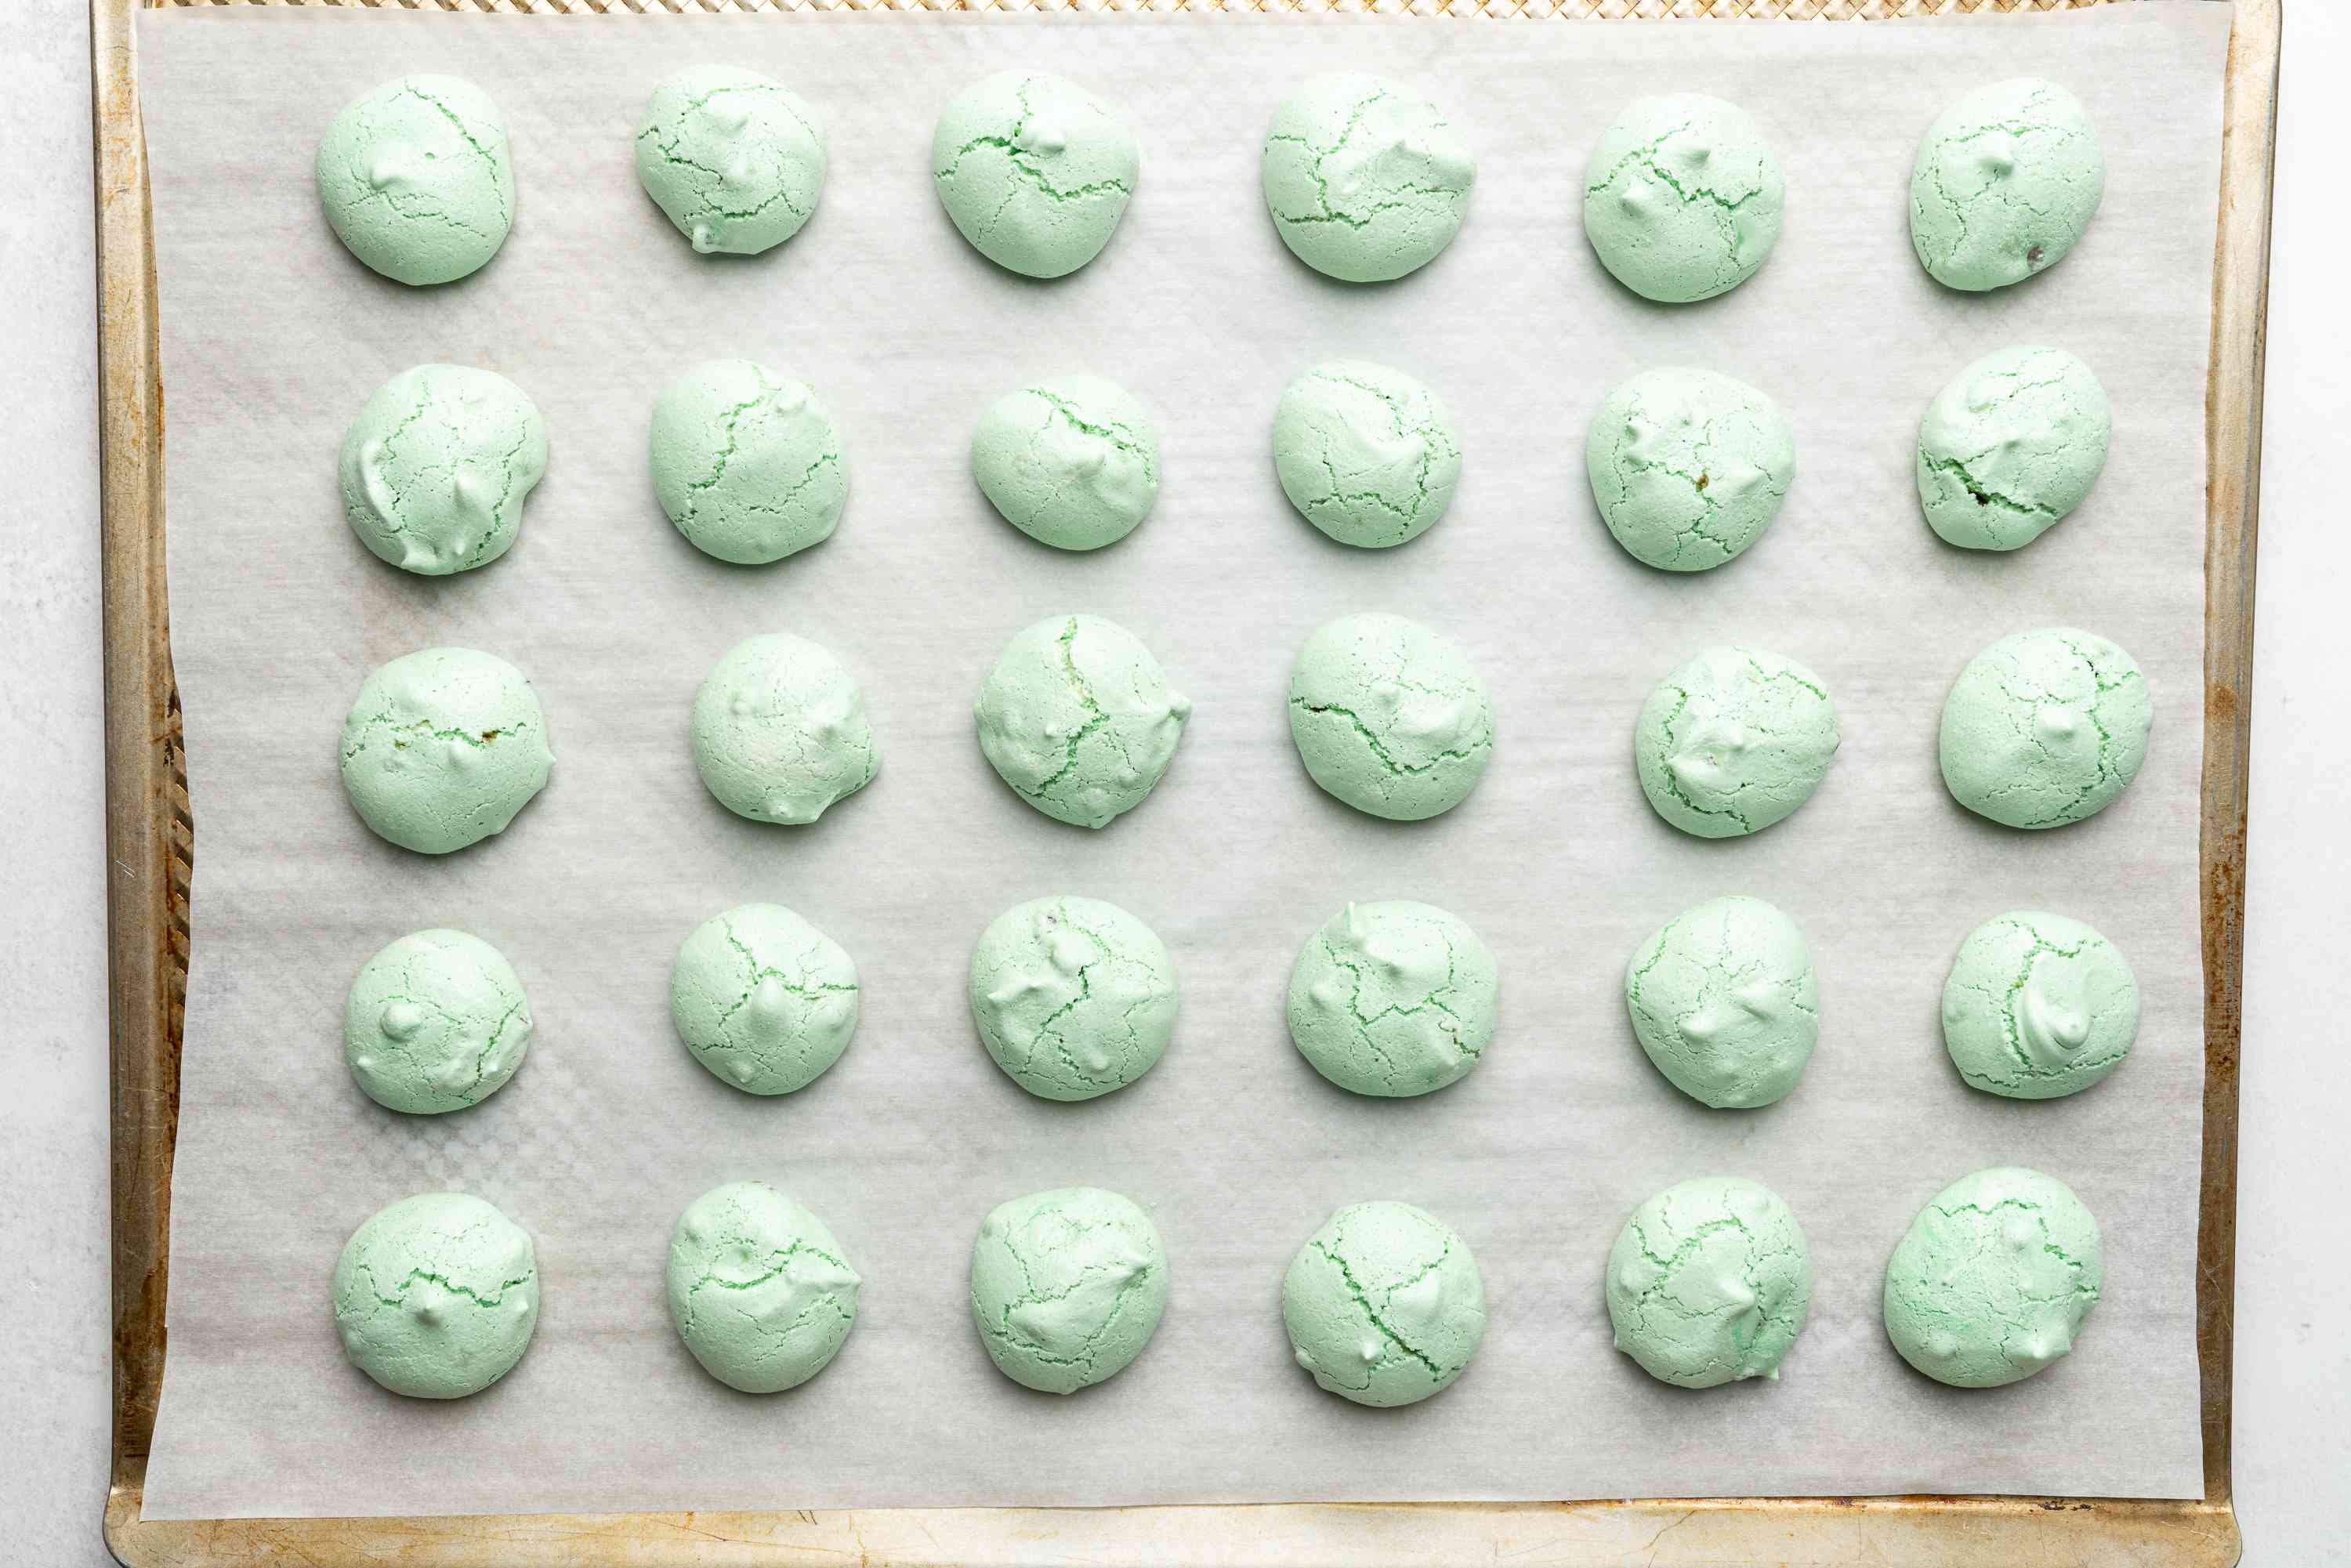 Mint Chocolate Chip Meringue Cookies on a baking sheet